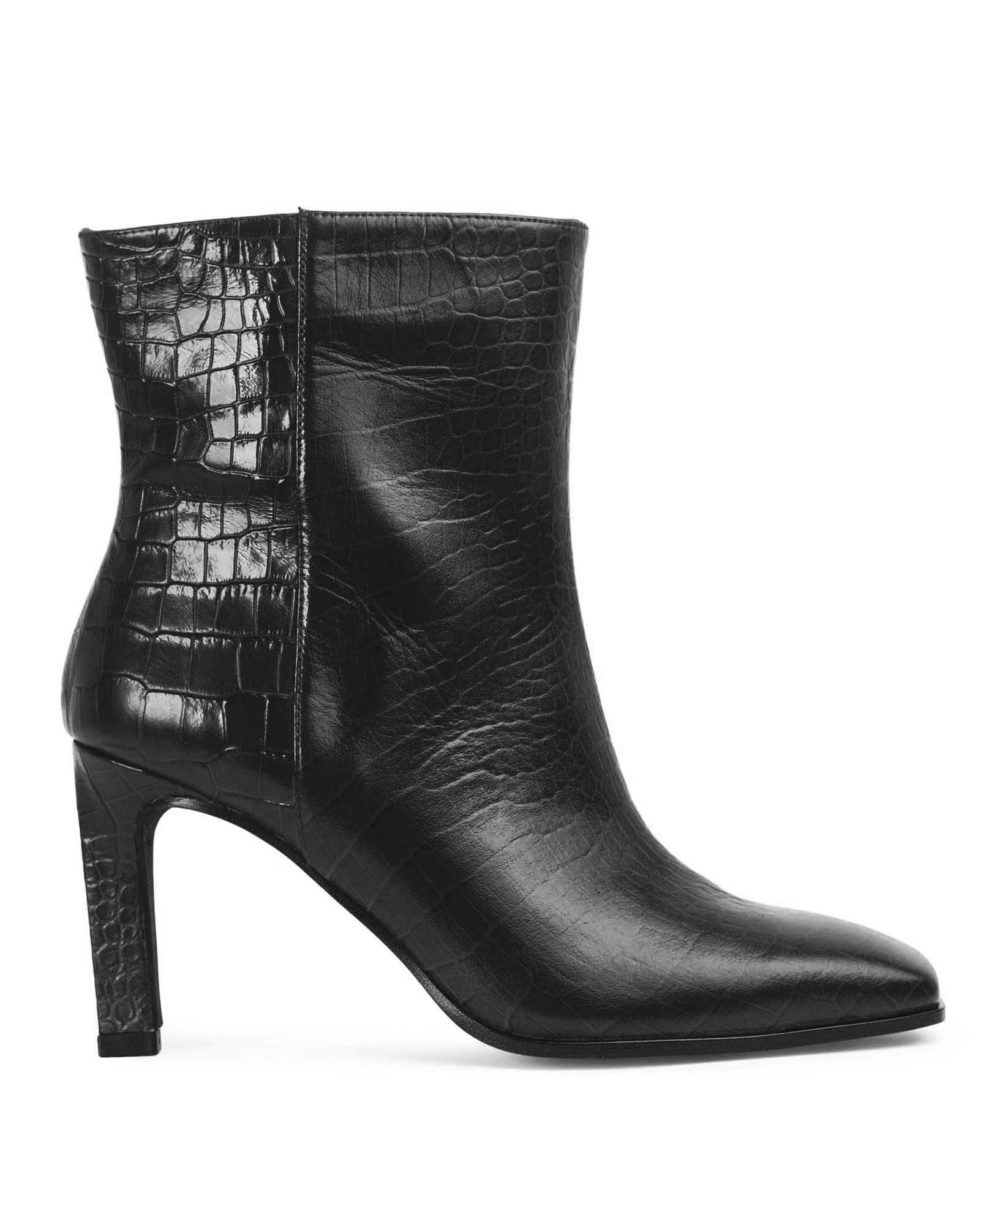 Leather booties Paco Gil